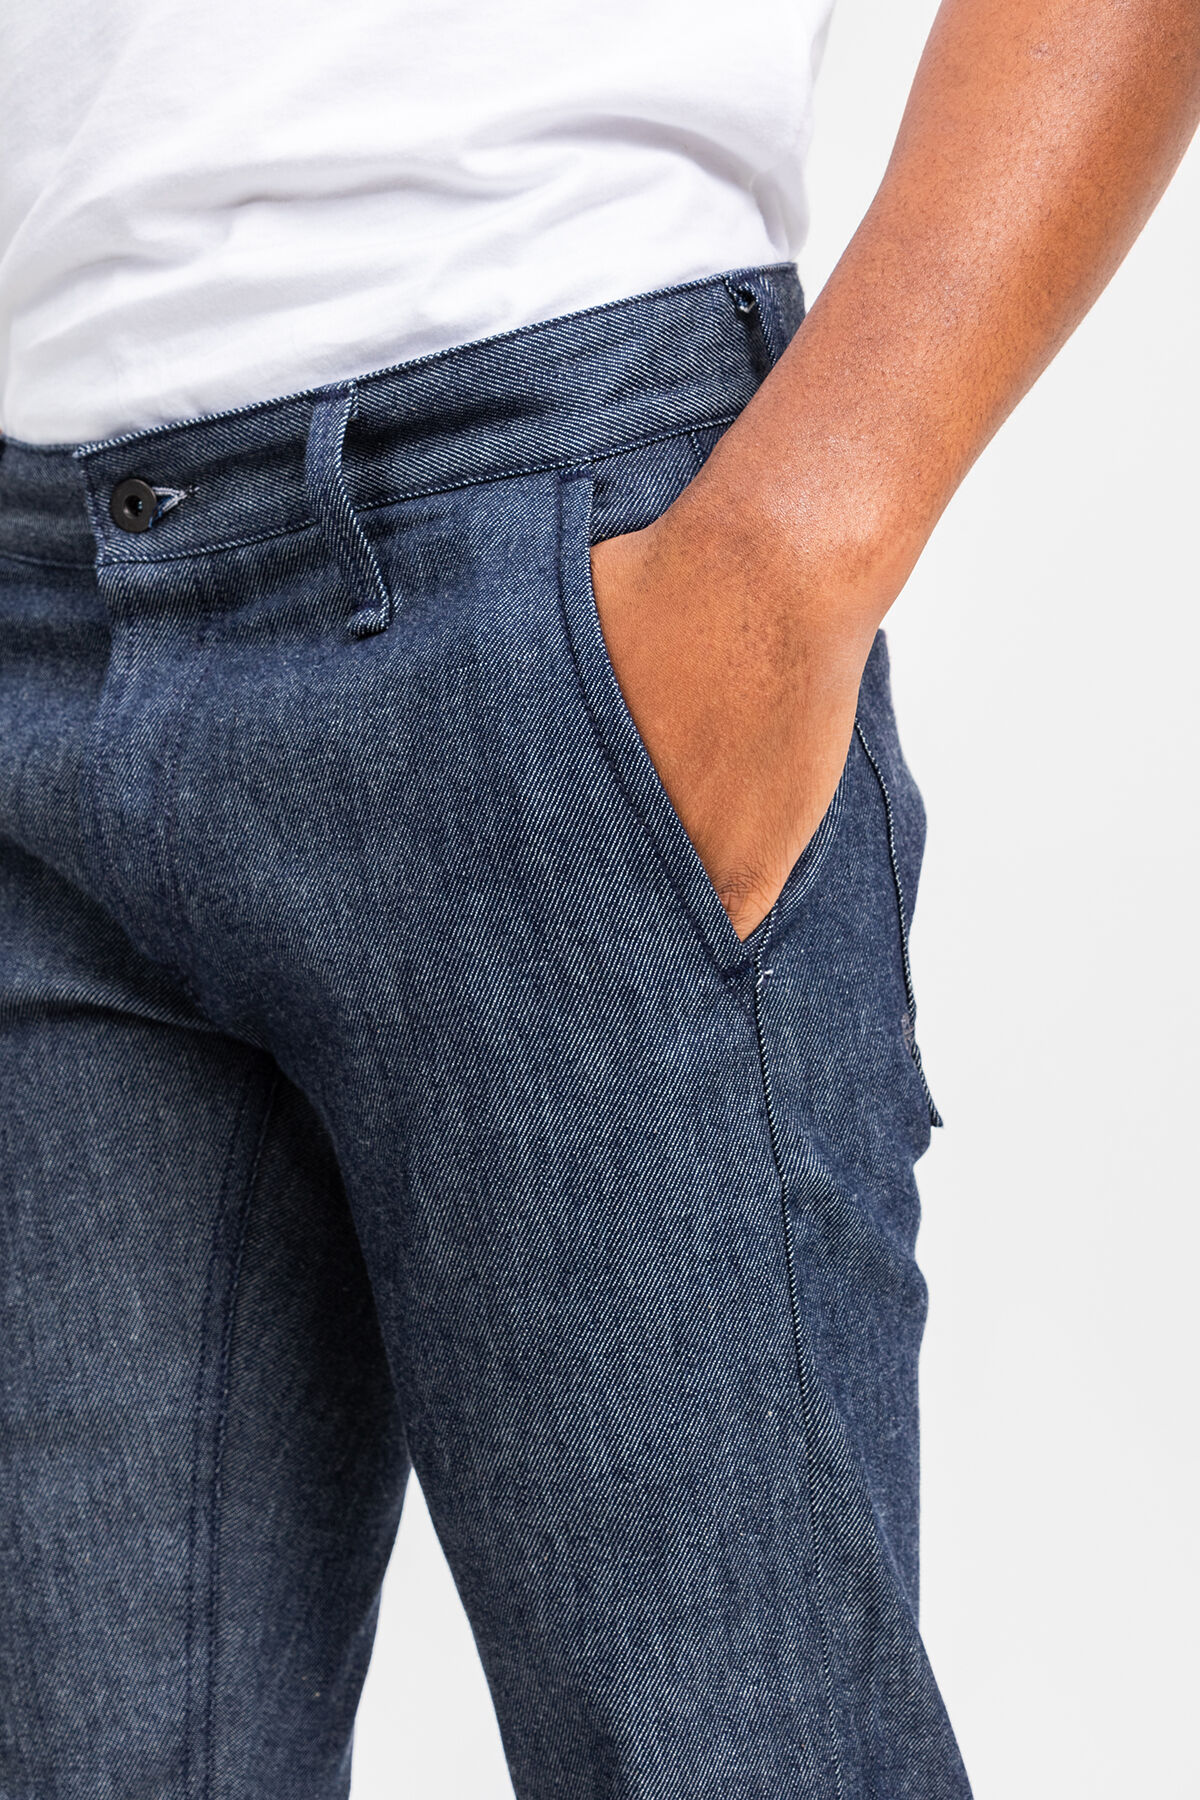 YORK Bio-stretch, Virgin Selvedge Denim - Slim, Tapered Fit